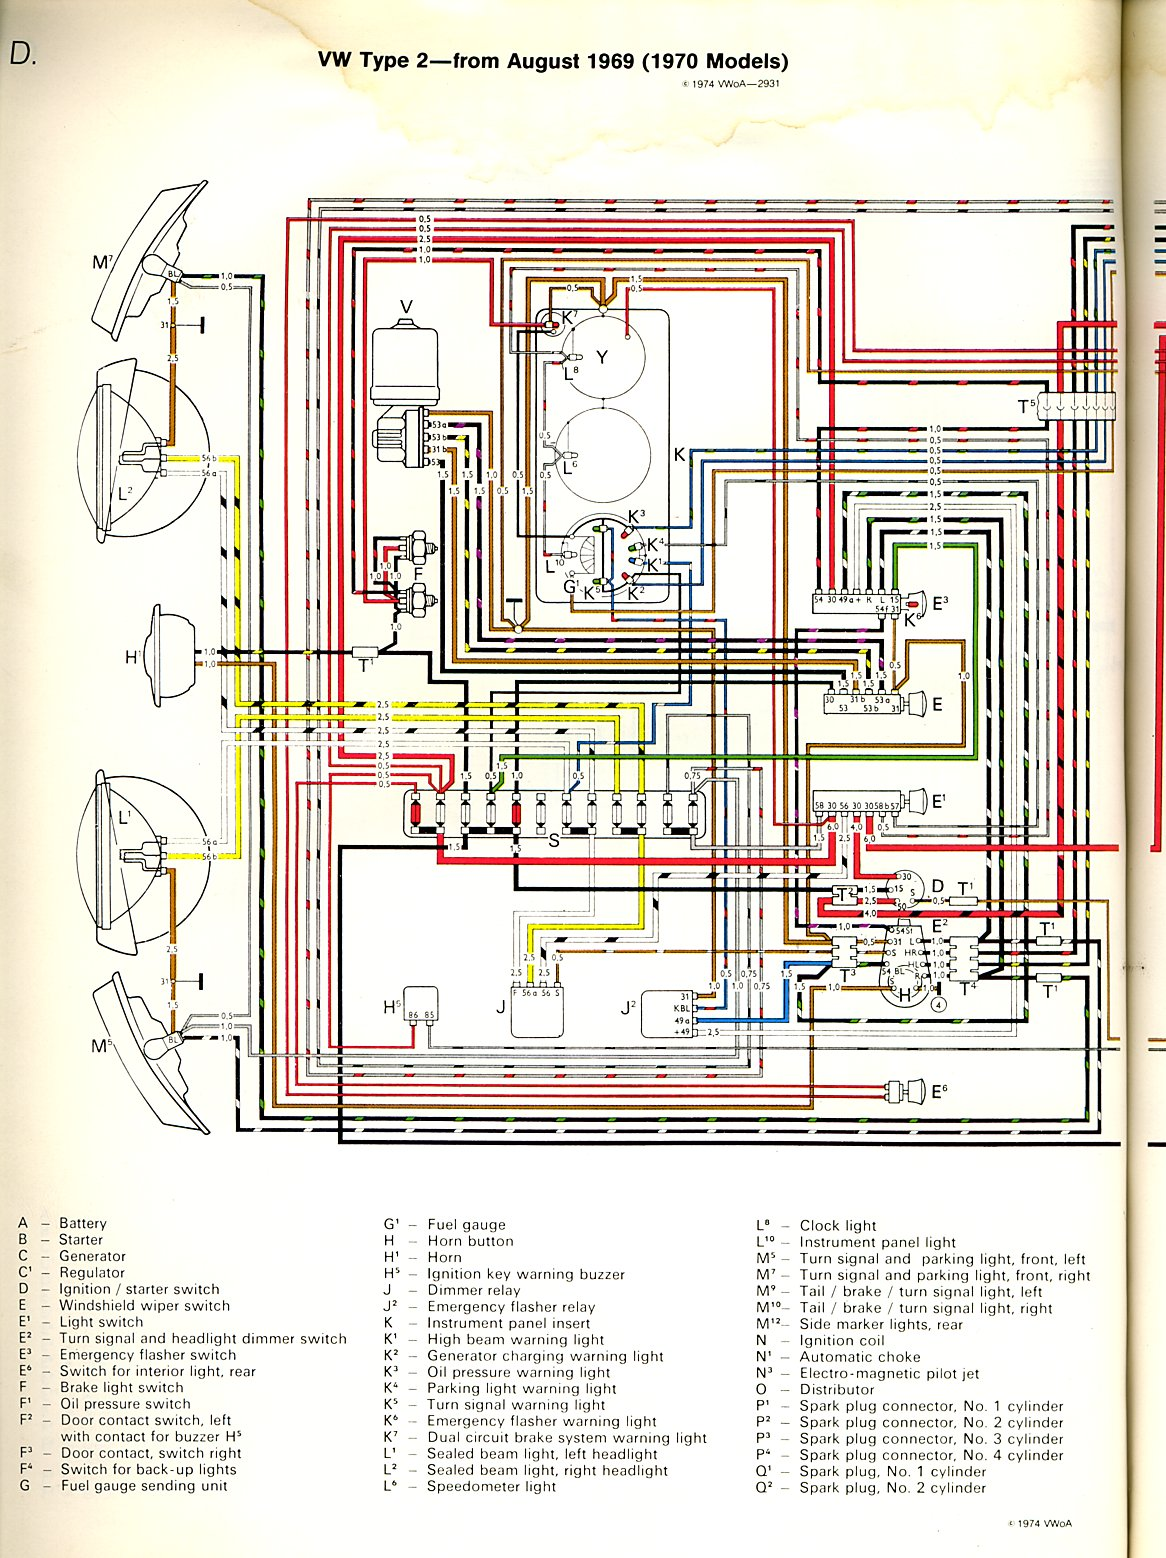 baybus_70a vw bus wiring diagram 1965 vw bus wiring diagram \u2022 wiring diagrams 1977 VW Beetle Wiring Diagram at honlapkeszites.co